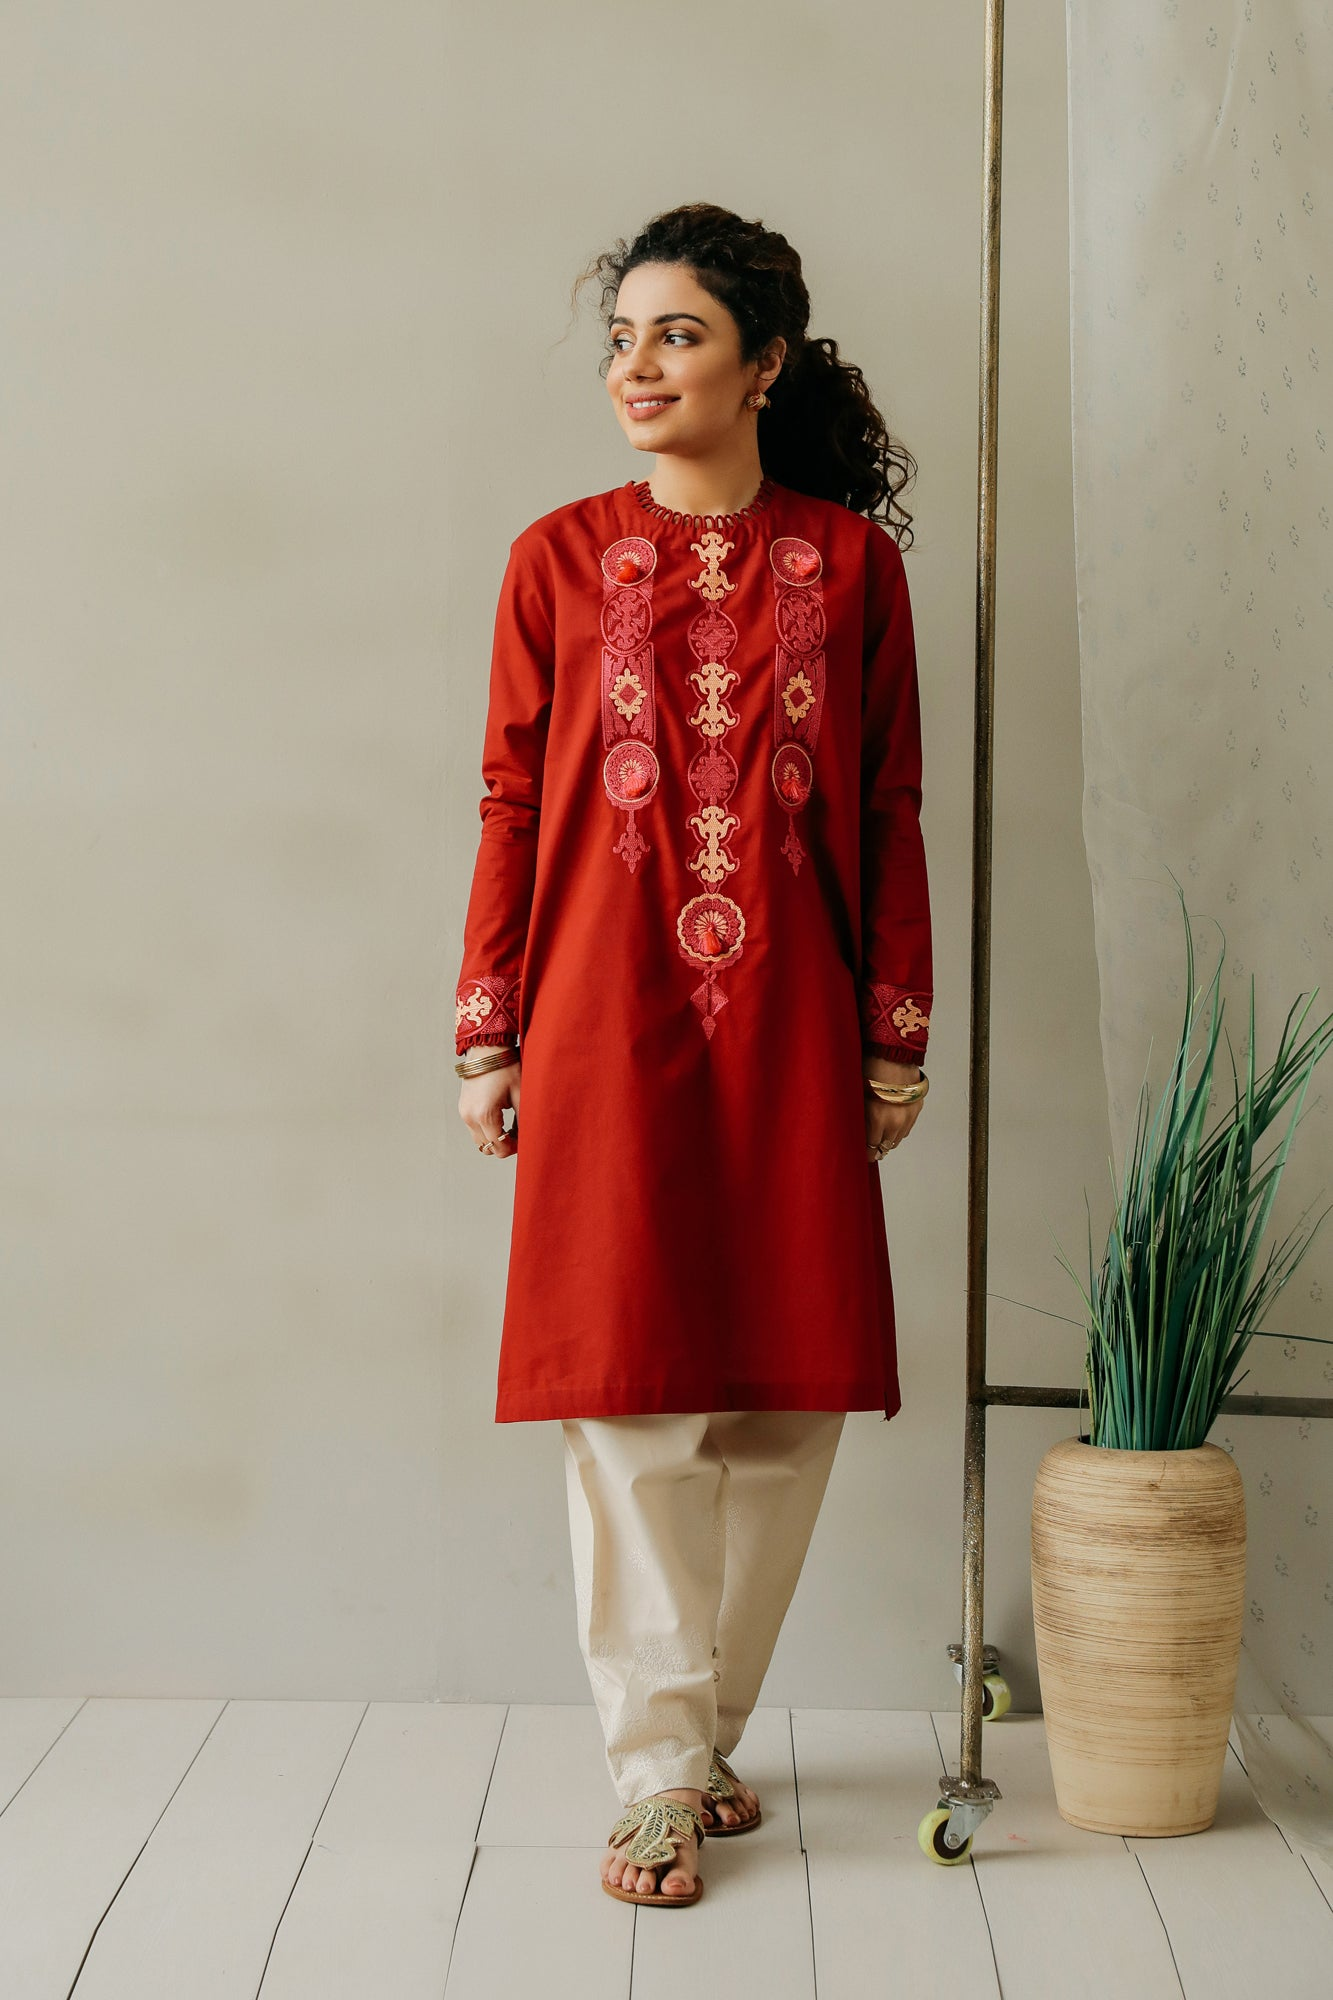 EMBROIDERED SHIRT (WTC111154) - Ethnic by Outfitters